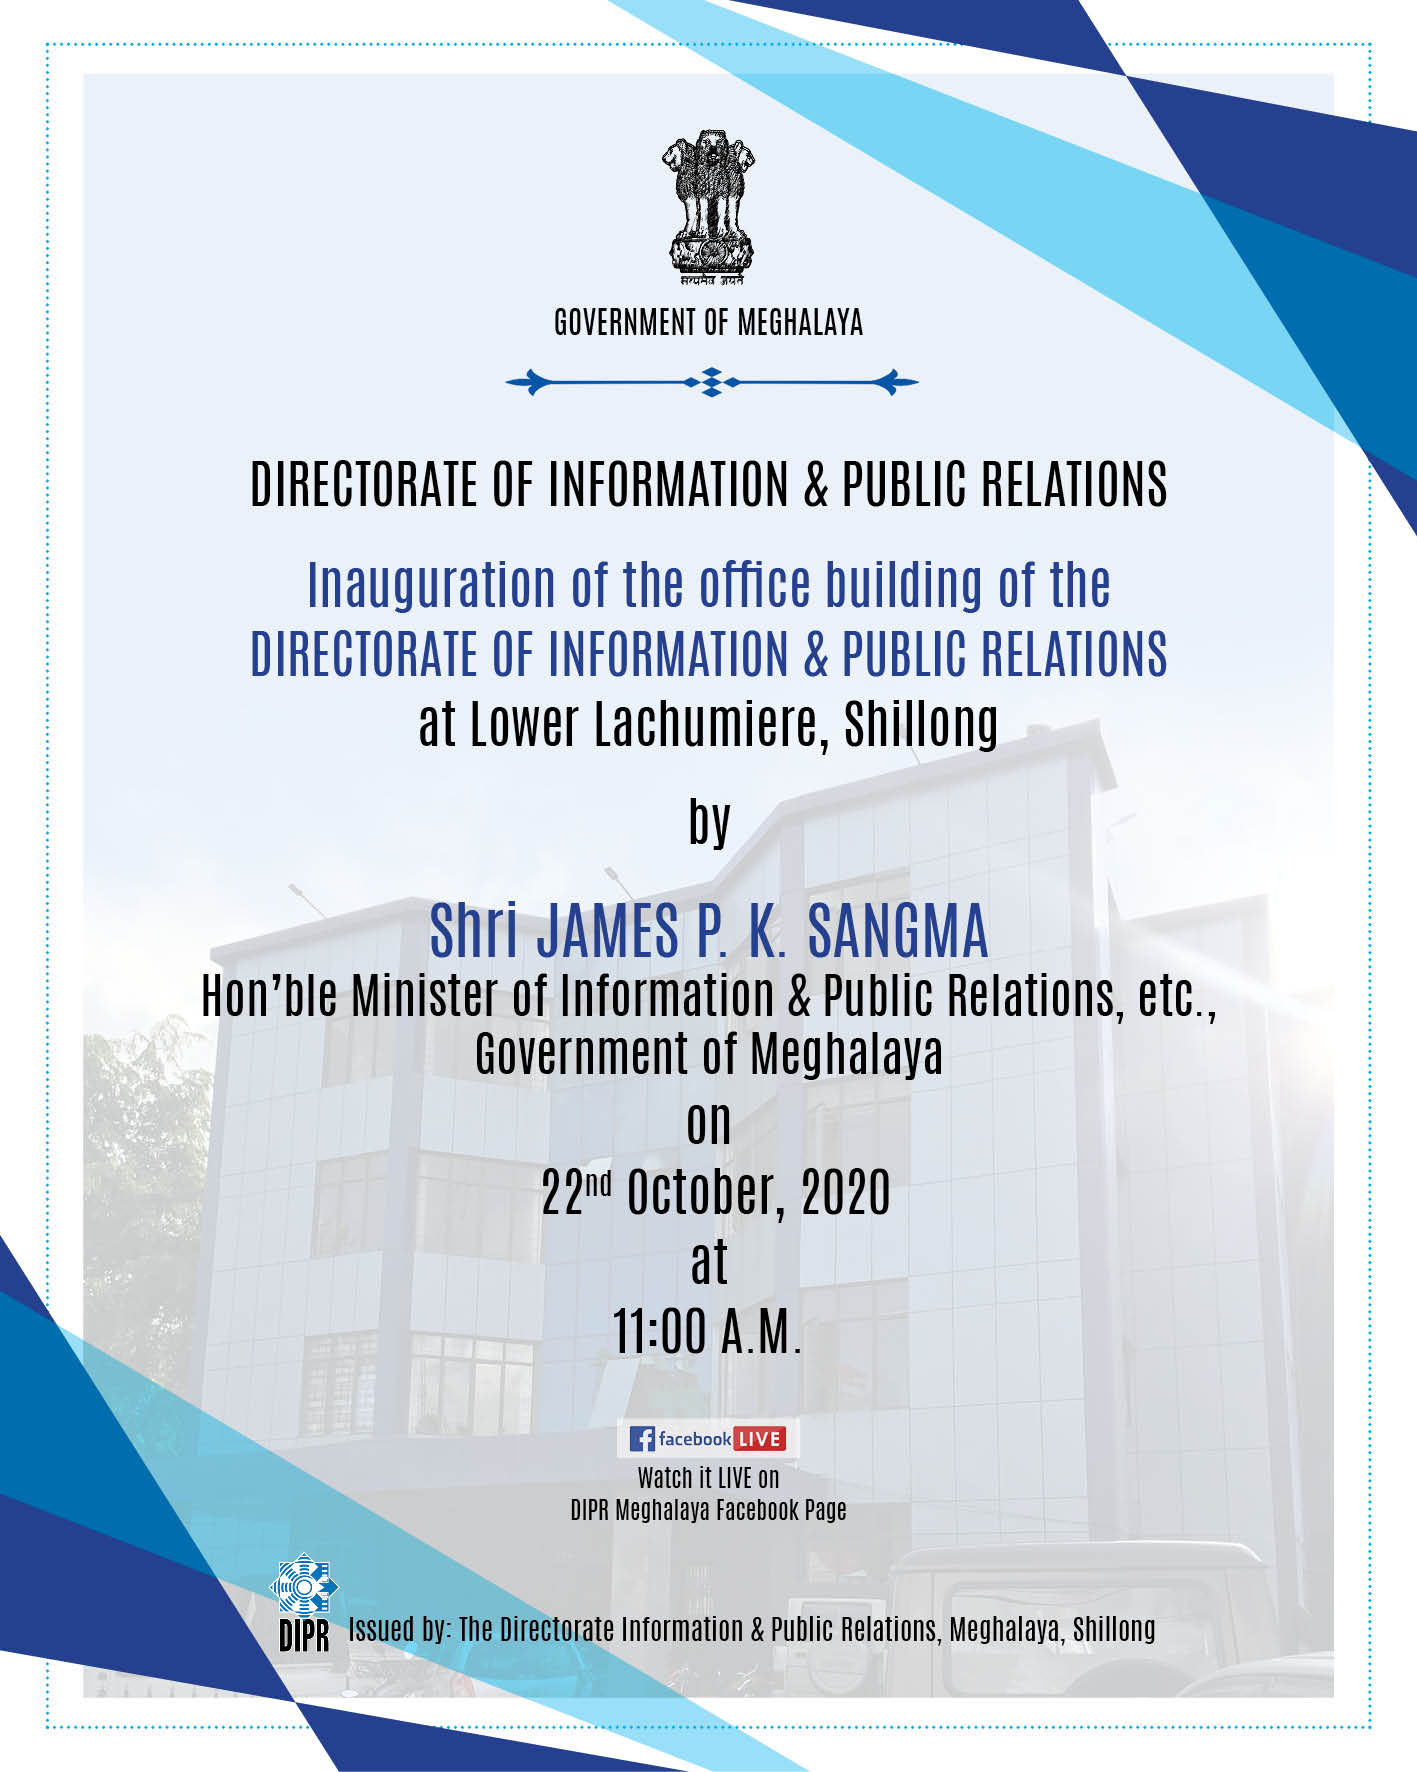 Inauguration of Office building of the Directorate of Information & Public Relations at Lower Lachumiere, Shillong